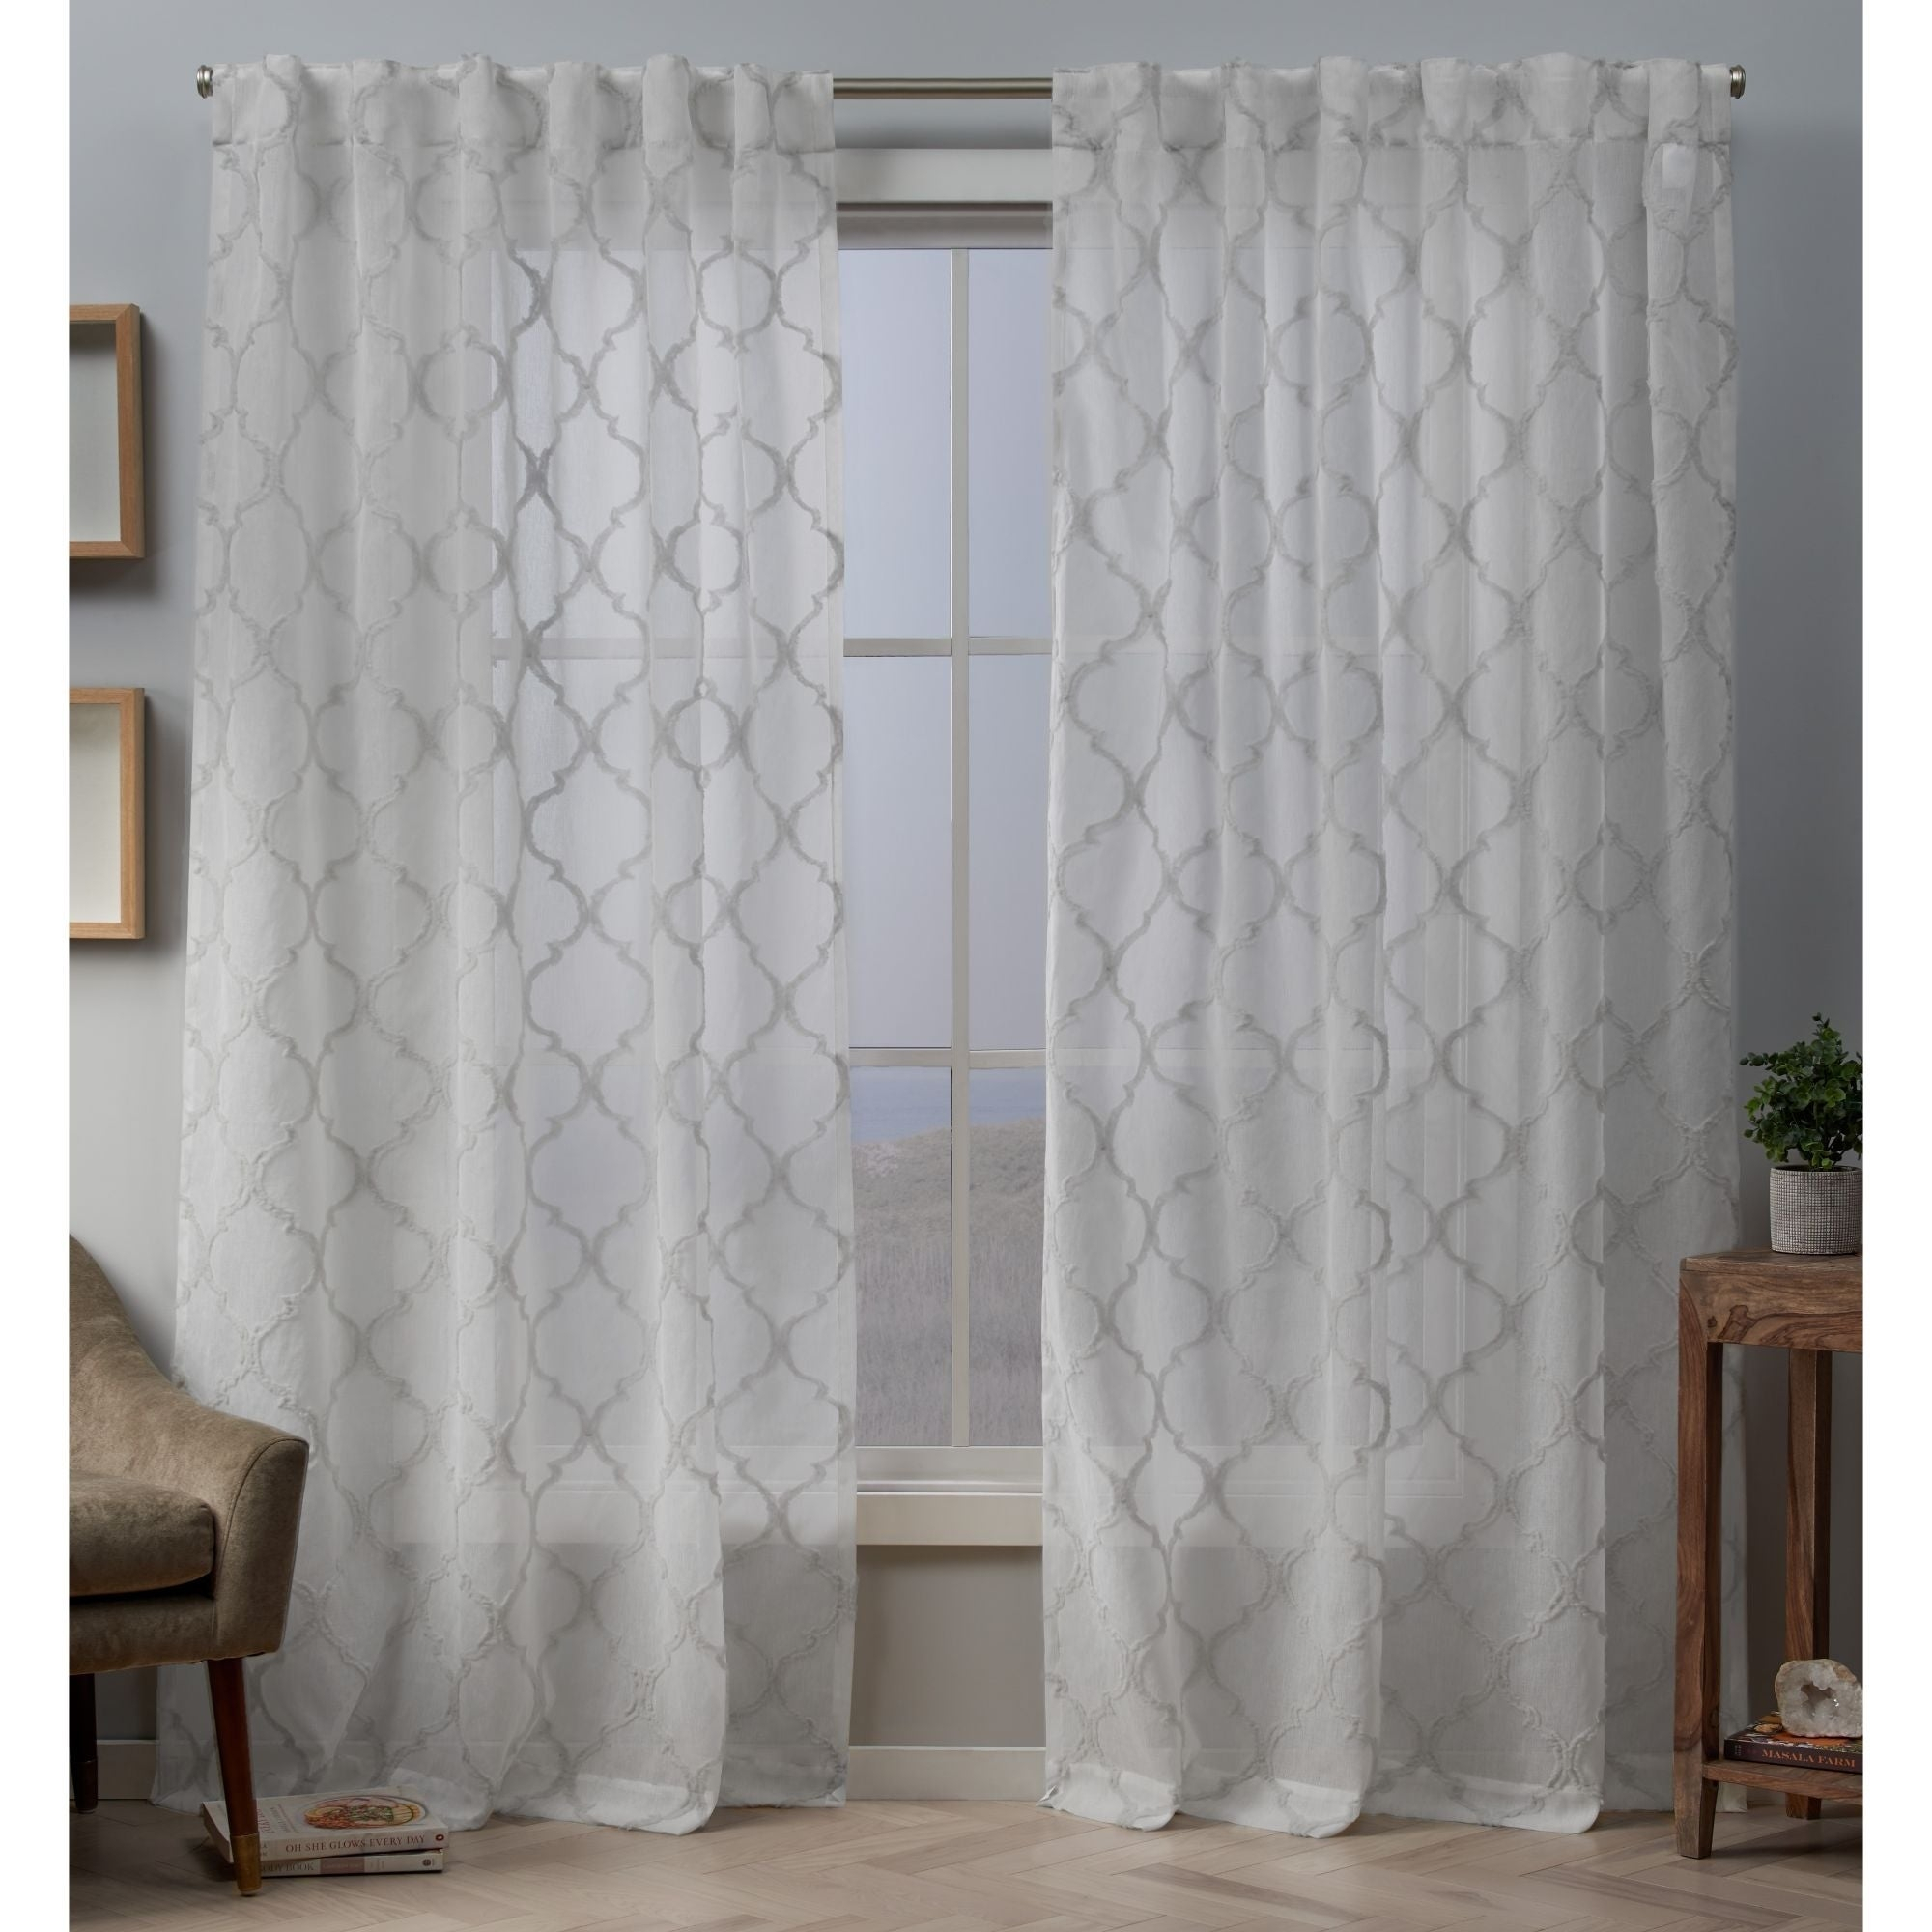 Copper Grove Botevgrad Embellished Sheer Top Curtain Panel Pair With Hidden Tab Within Laya Fretwork Burnout Sheer Curtain Panels (View 11 of 20)